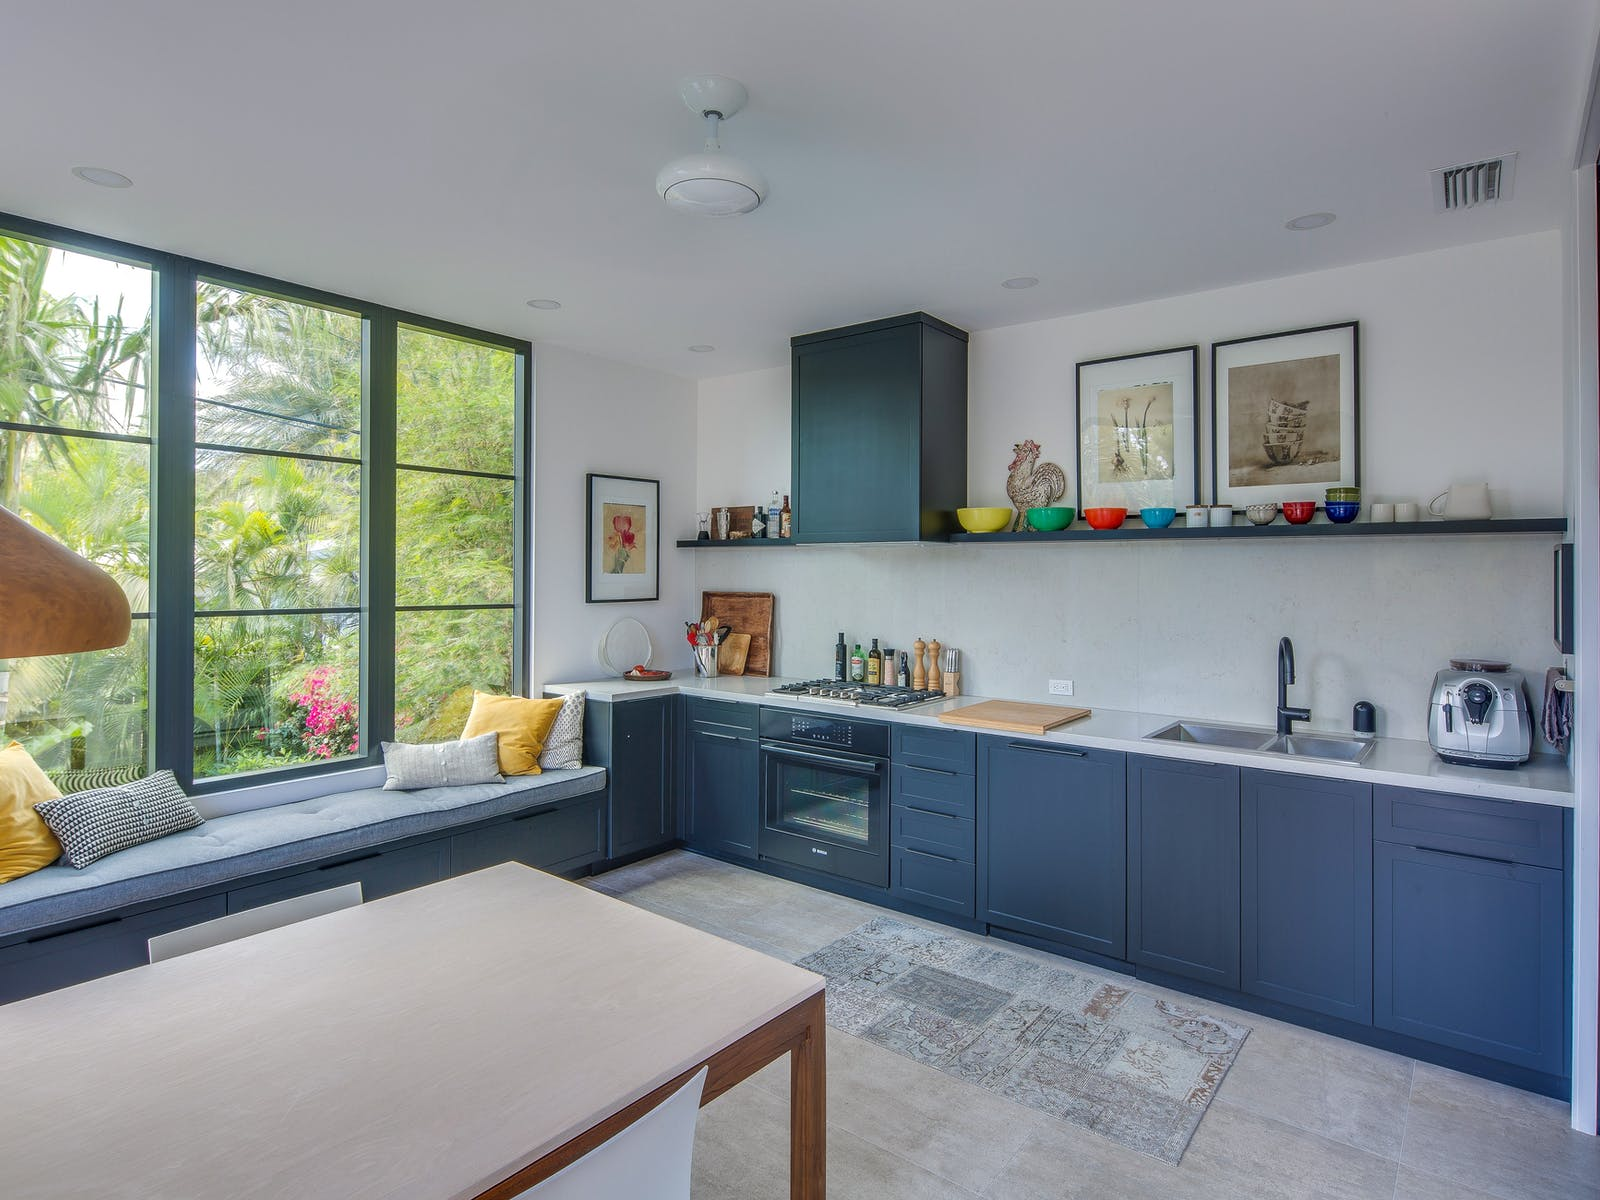 Kitchen of Key West, FL vacation home with blue cabinets